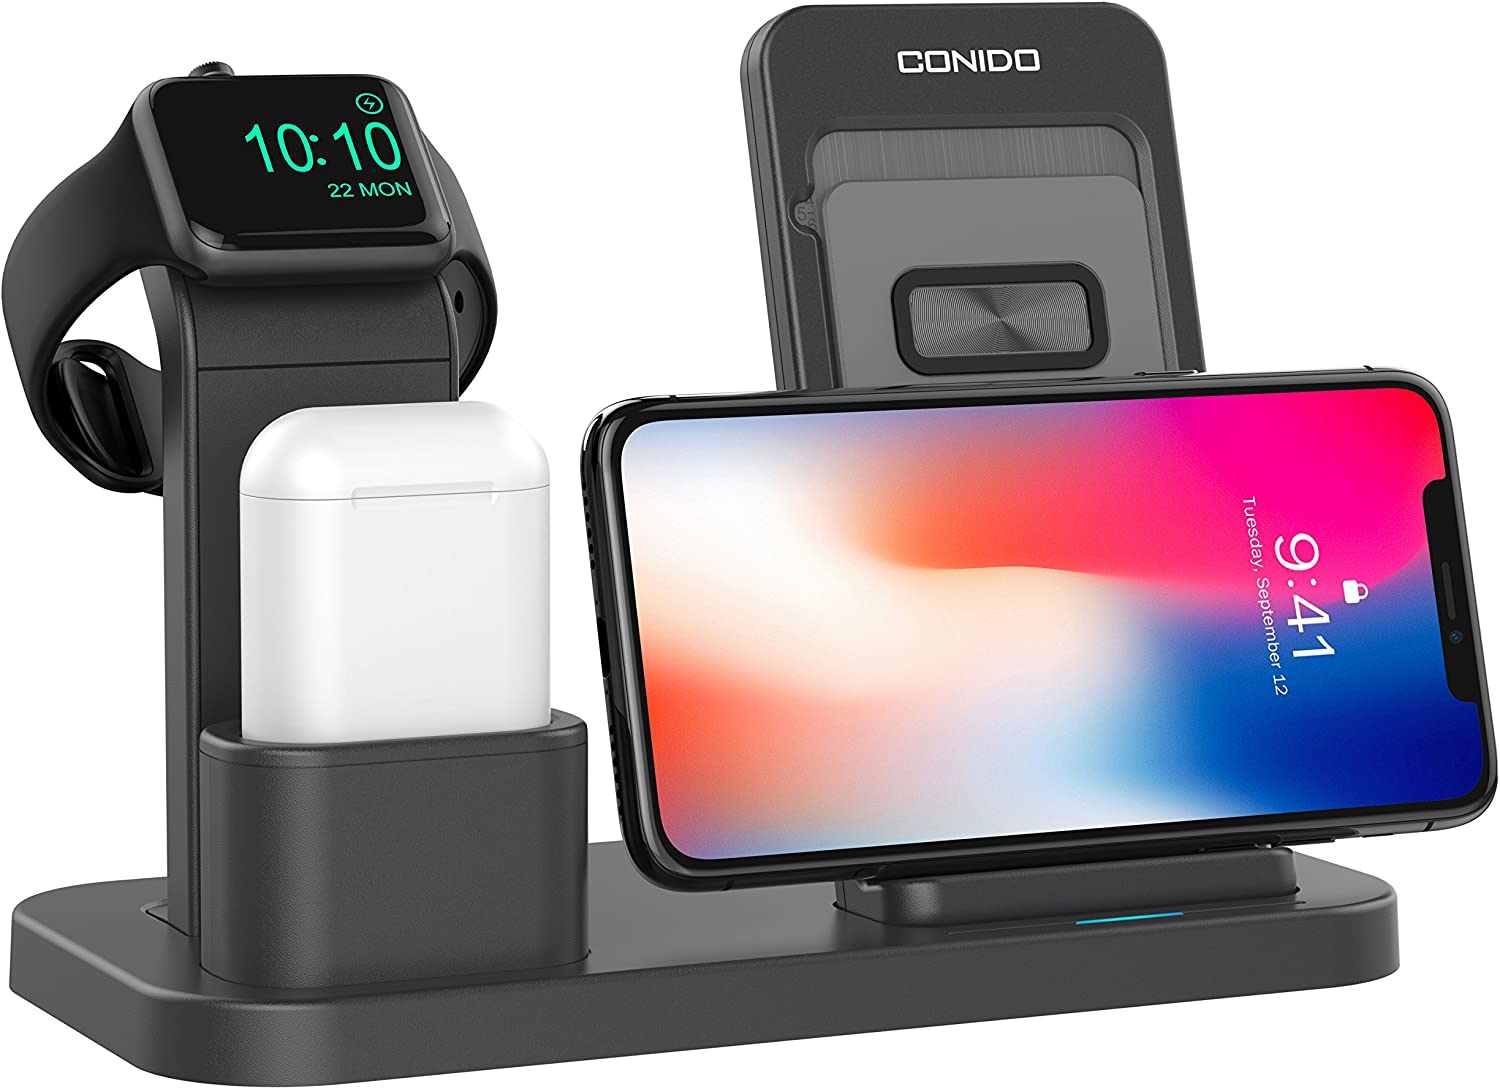 Conido Wireless Charger for iPhone, 3 in 1 Charging Stand